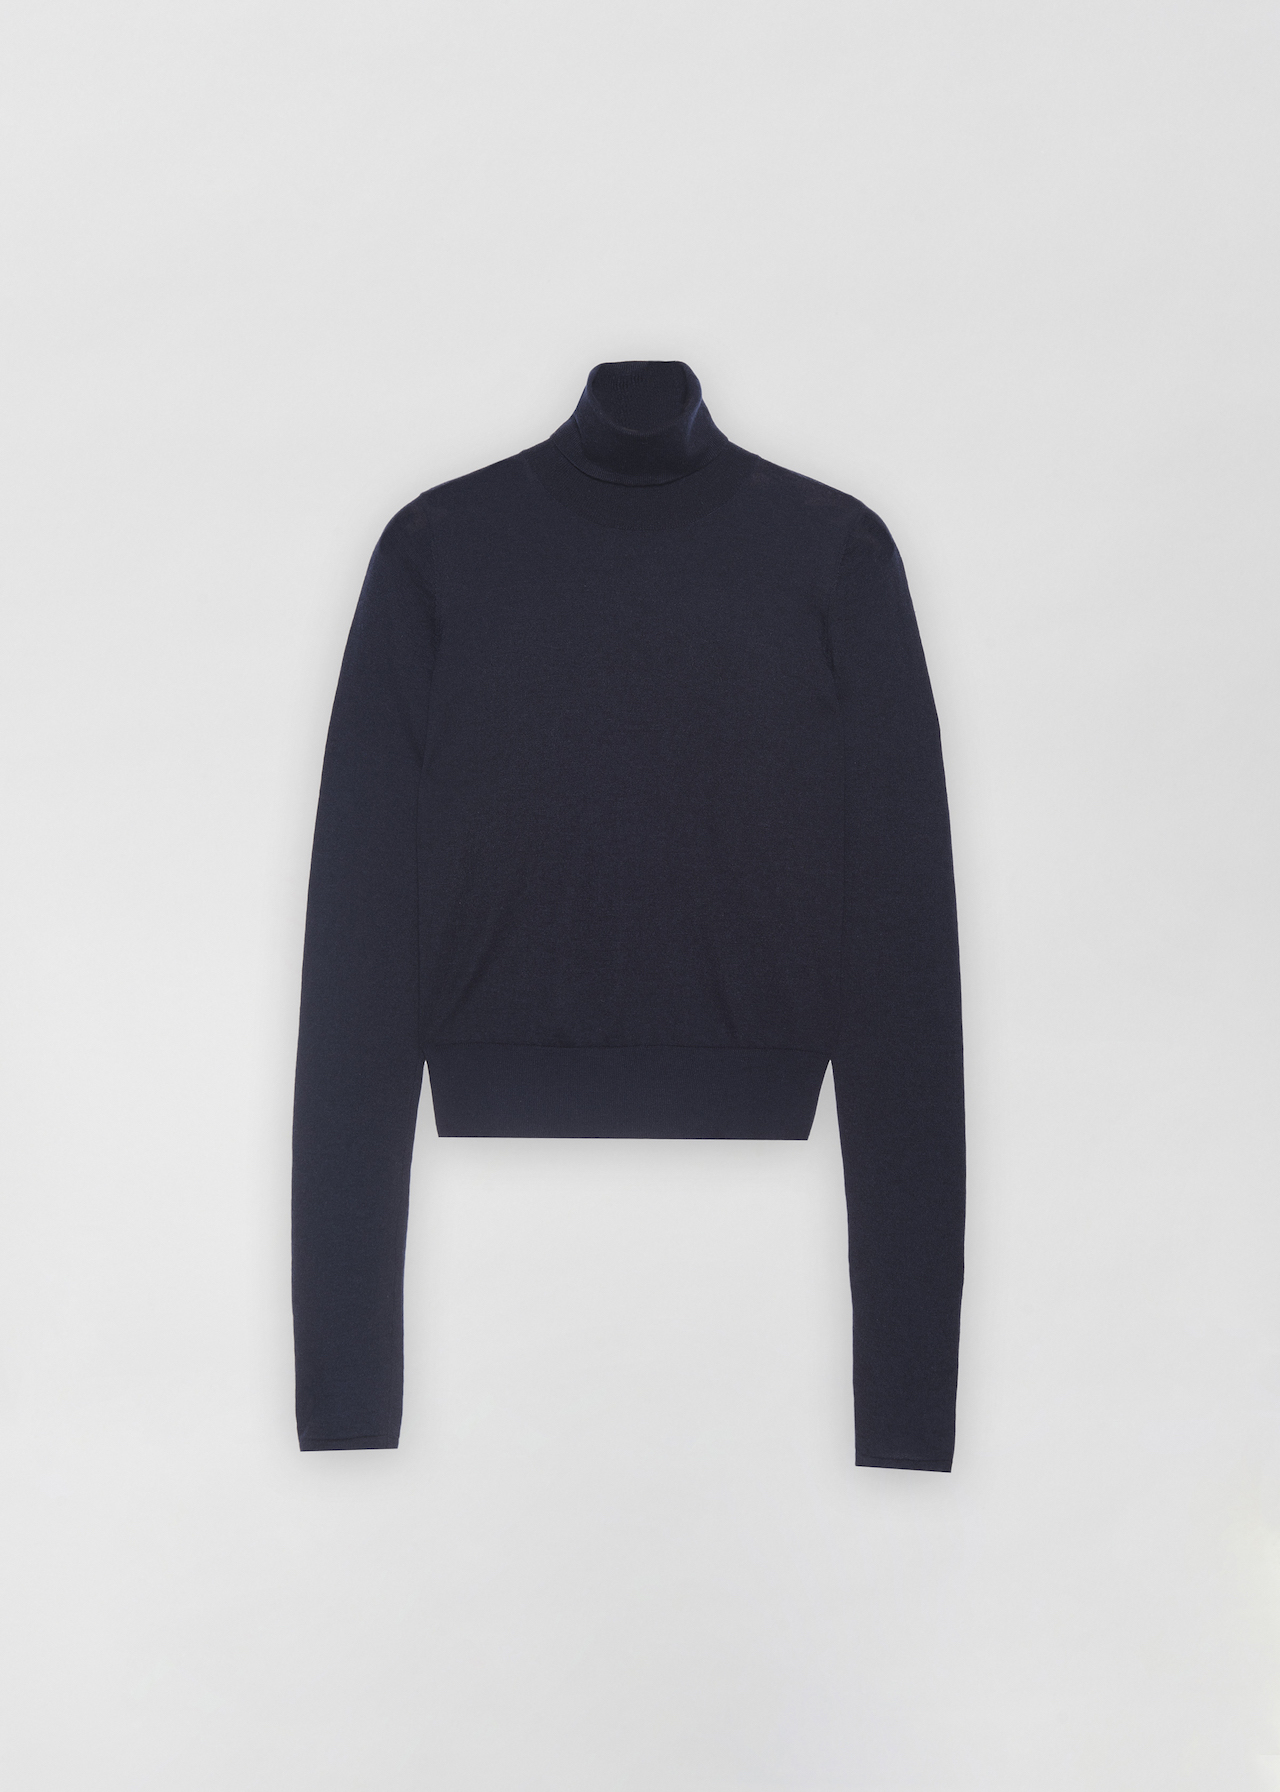 Fitted Cashmere Turtleneck - Black in Navy by Co Collections